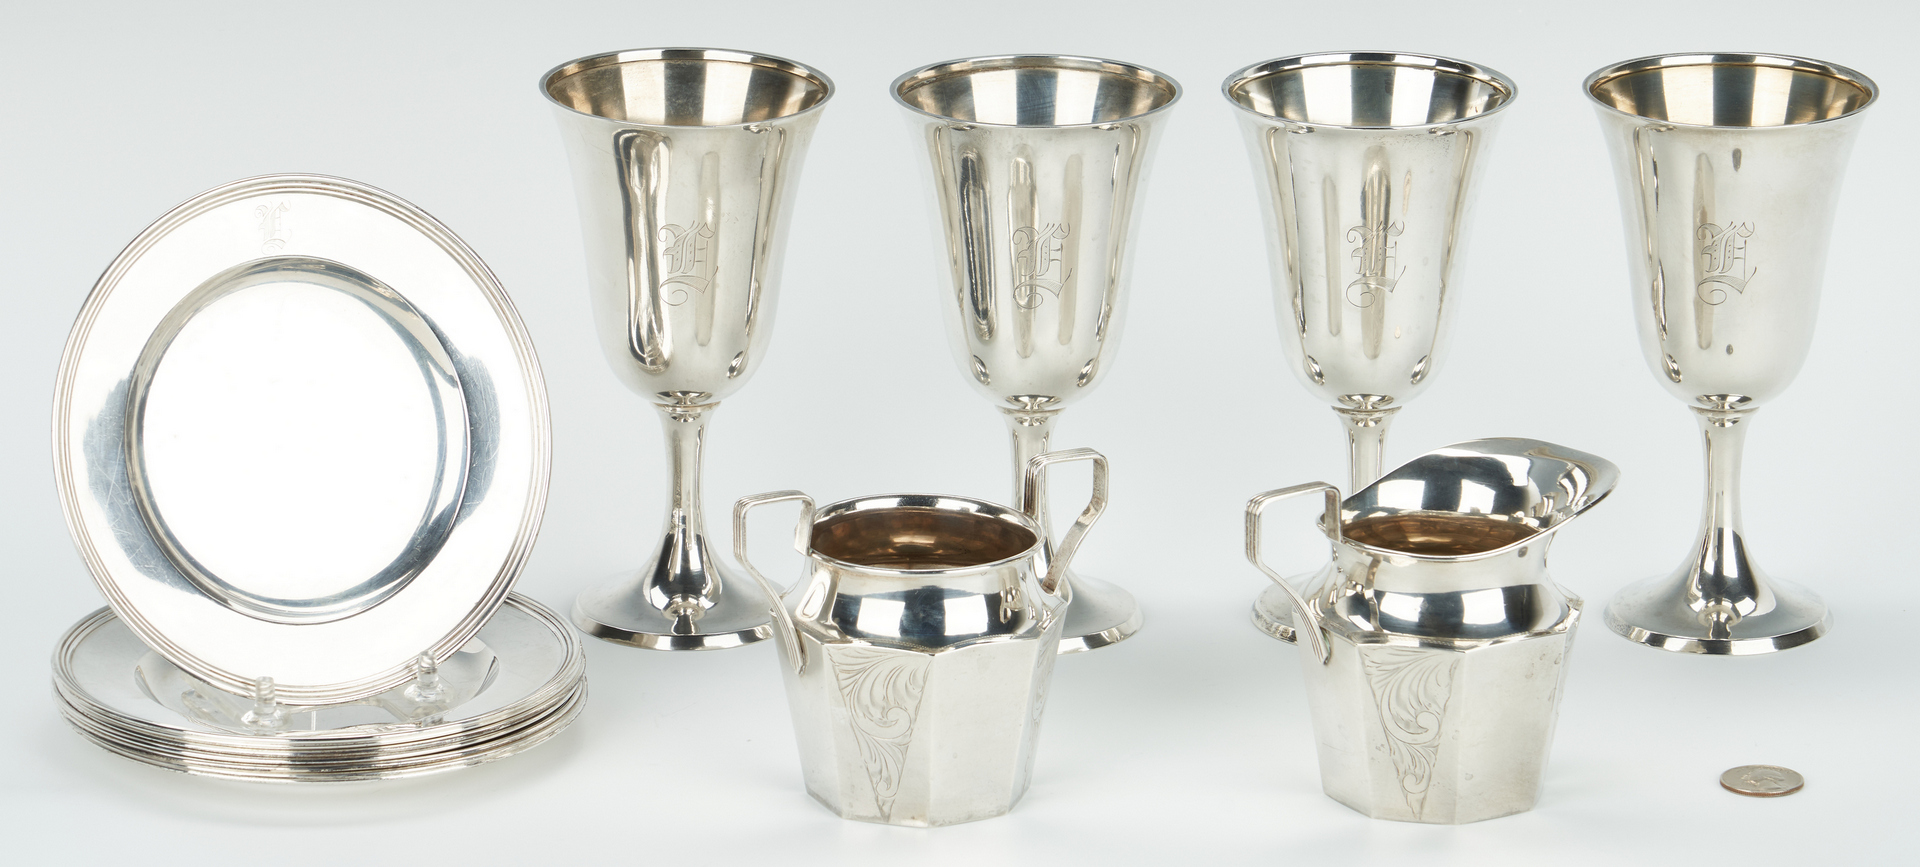 Lot 460: 14 Pcs. Sterling Silver, incl. Goblets, Plates